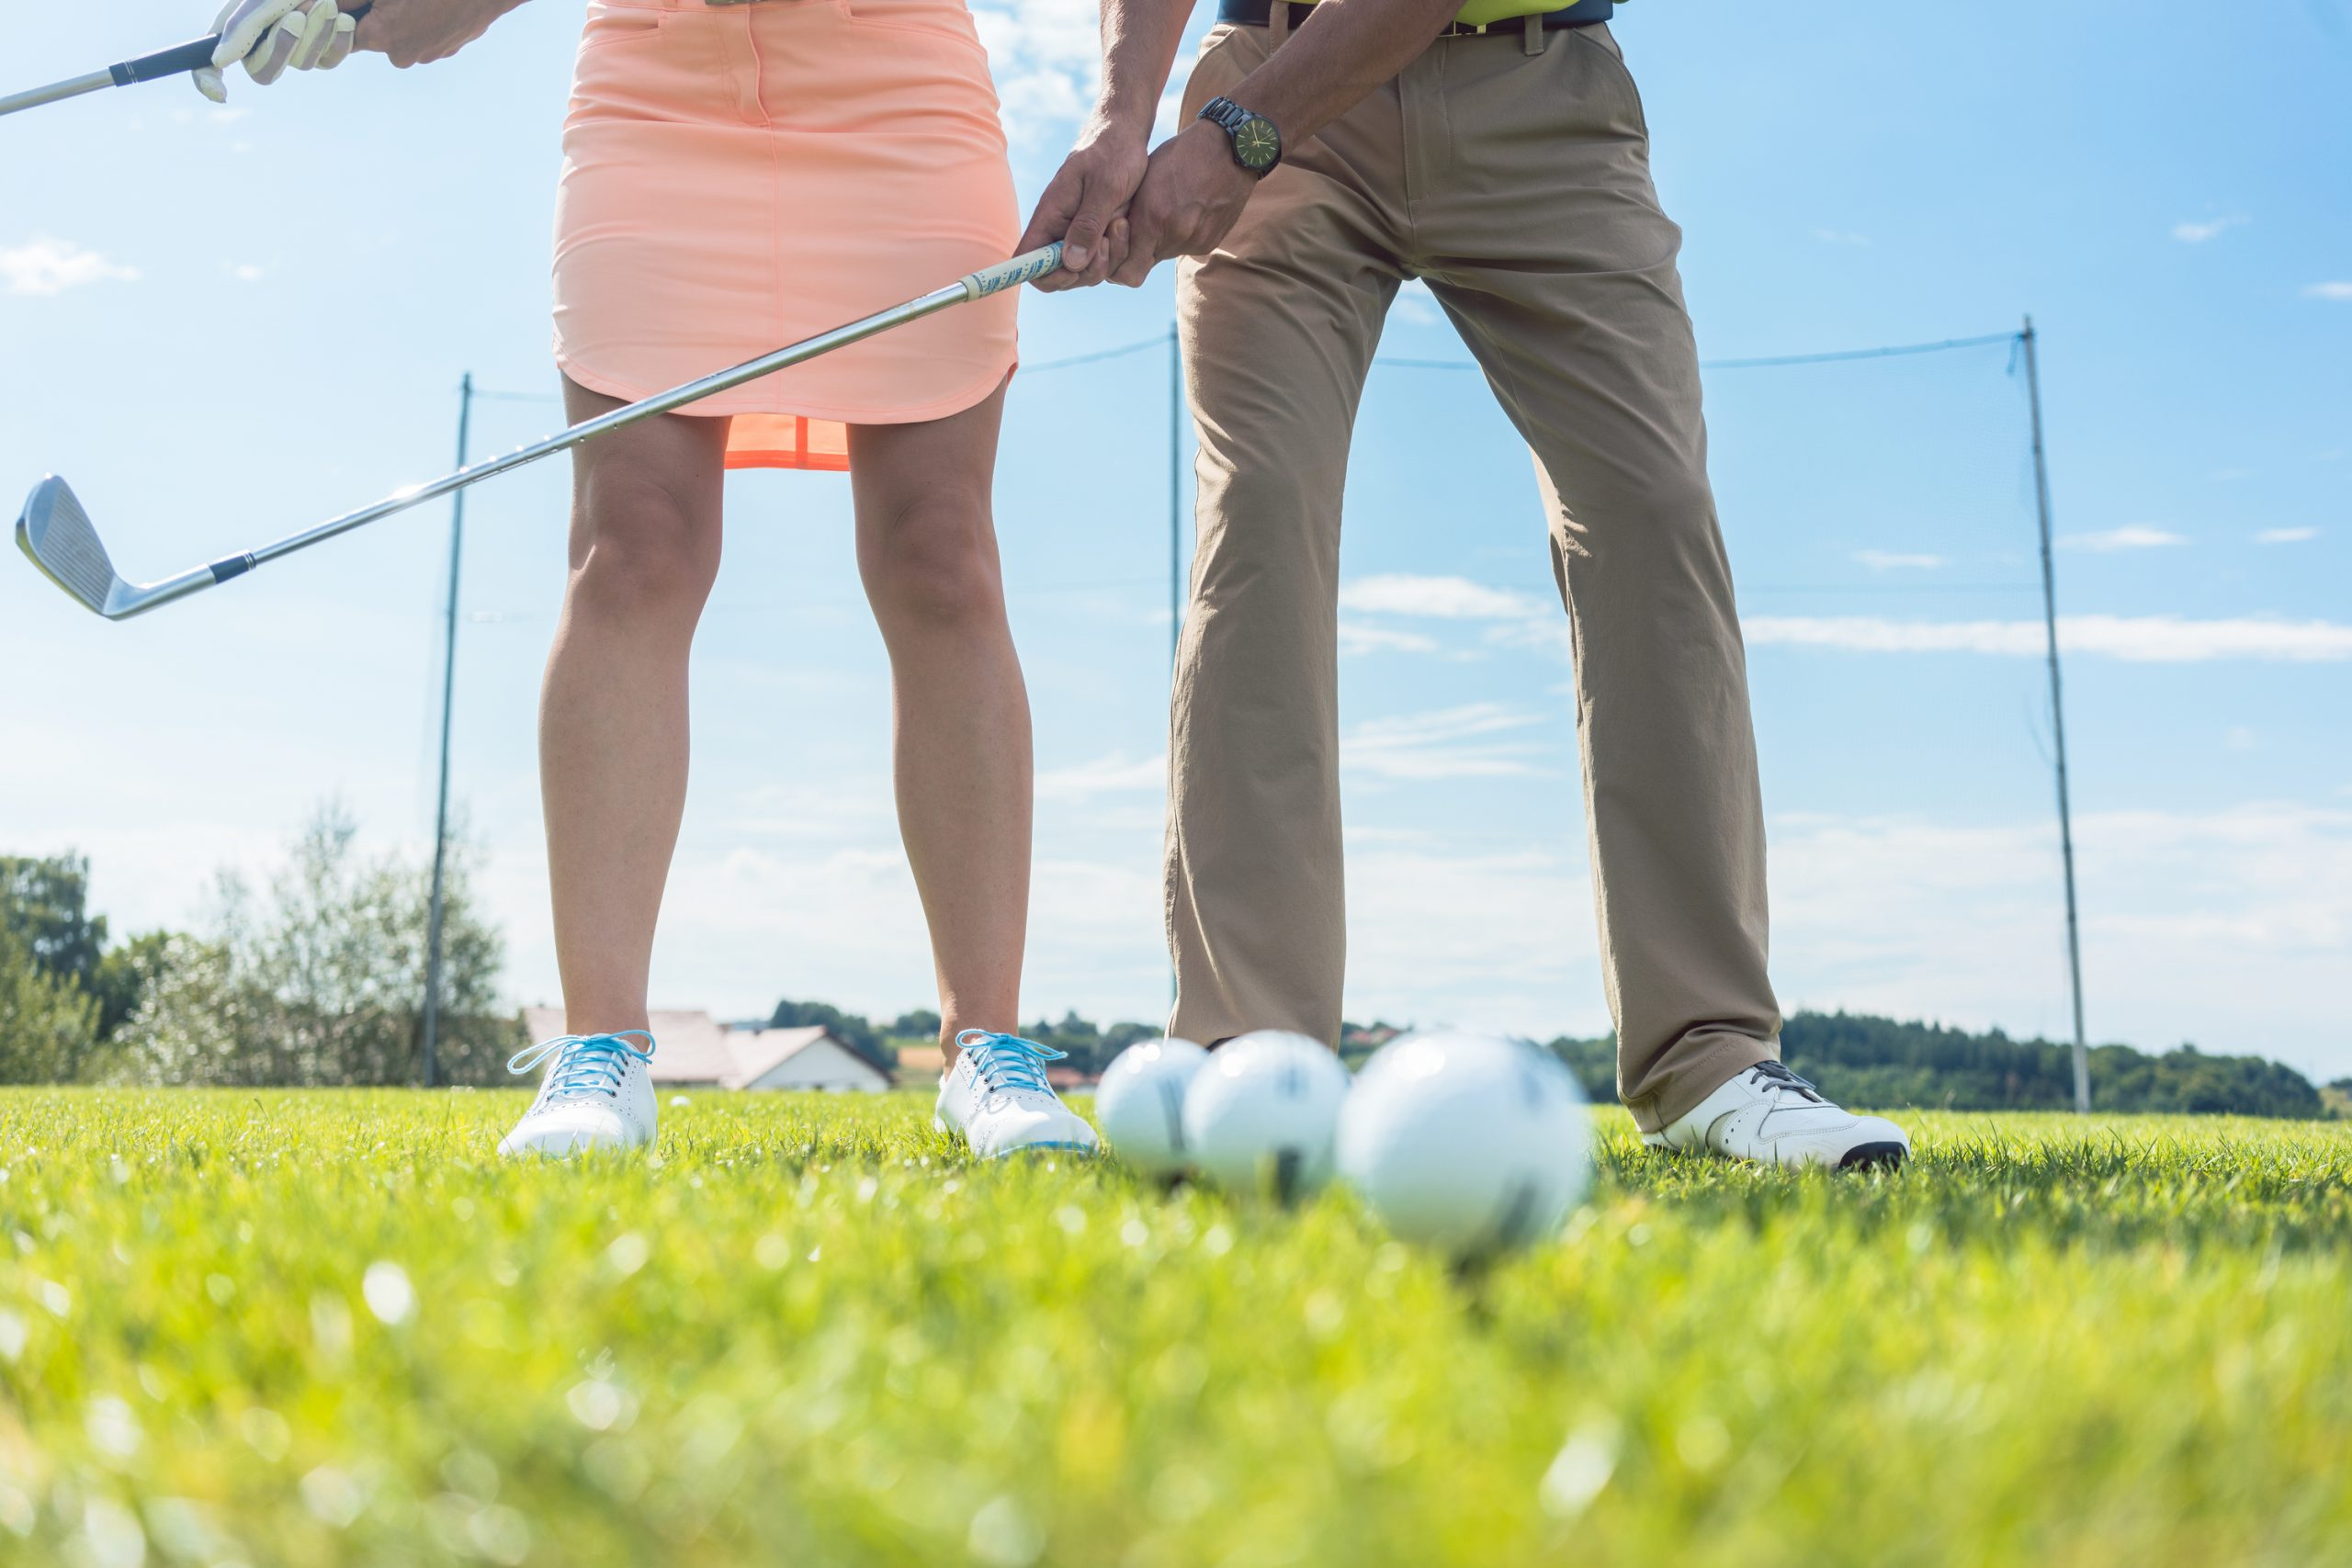 I am not going to lie, sometimes it's hard to think of something fun to do for date night! Fortunately, if you ever find yourself stuck, I've got you covered with these alphabet date night ideas that start with D. Spend the day at the driving range working on your golf skills.